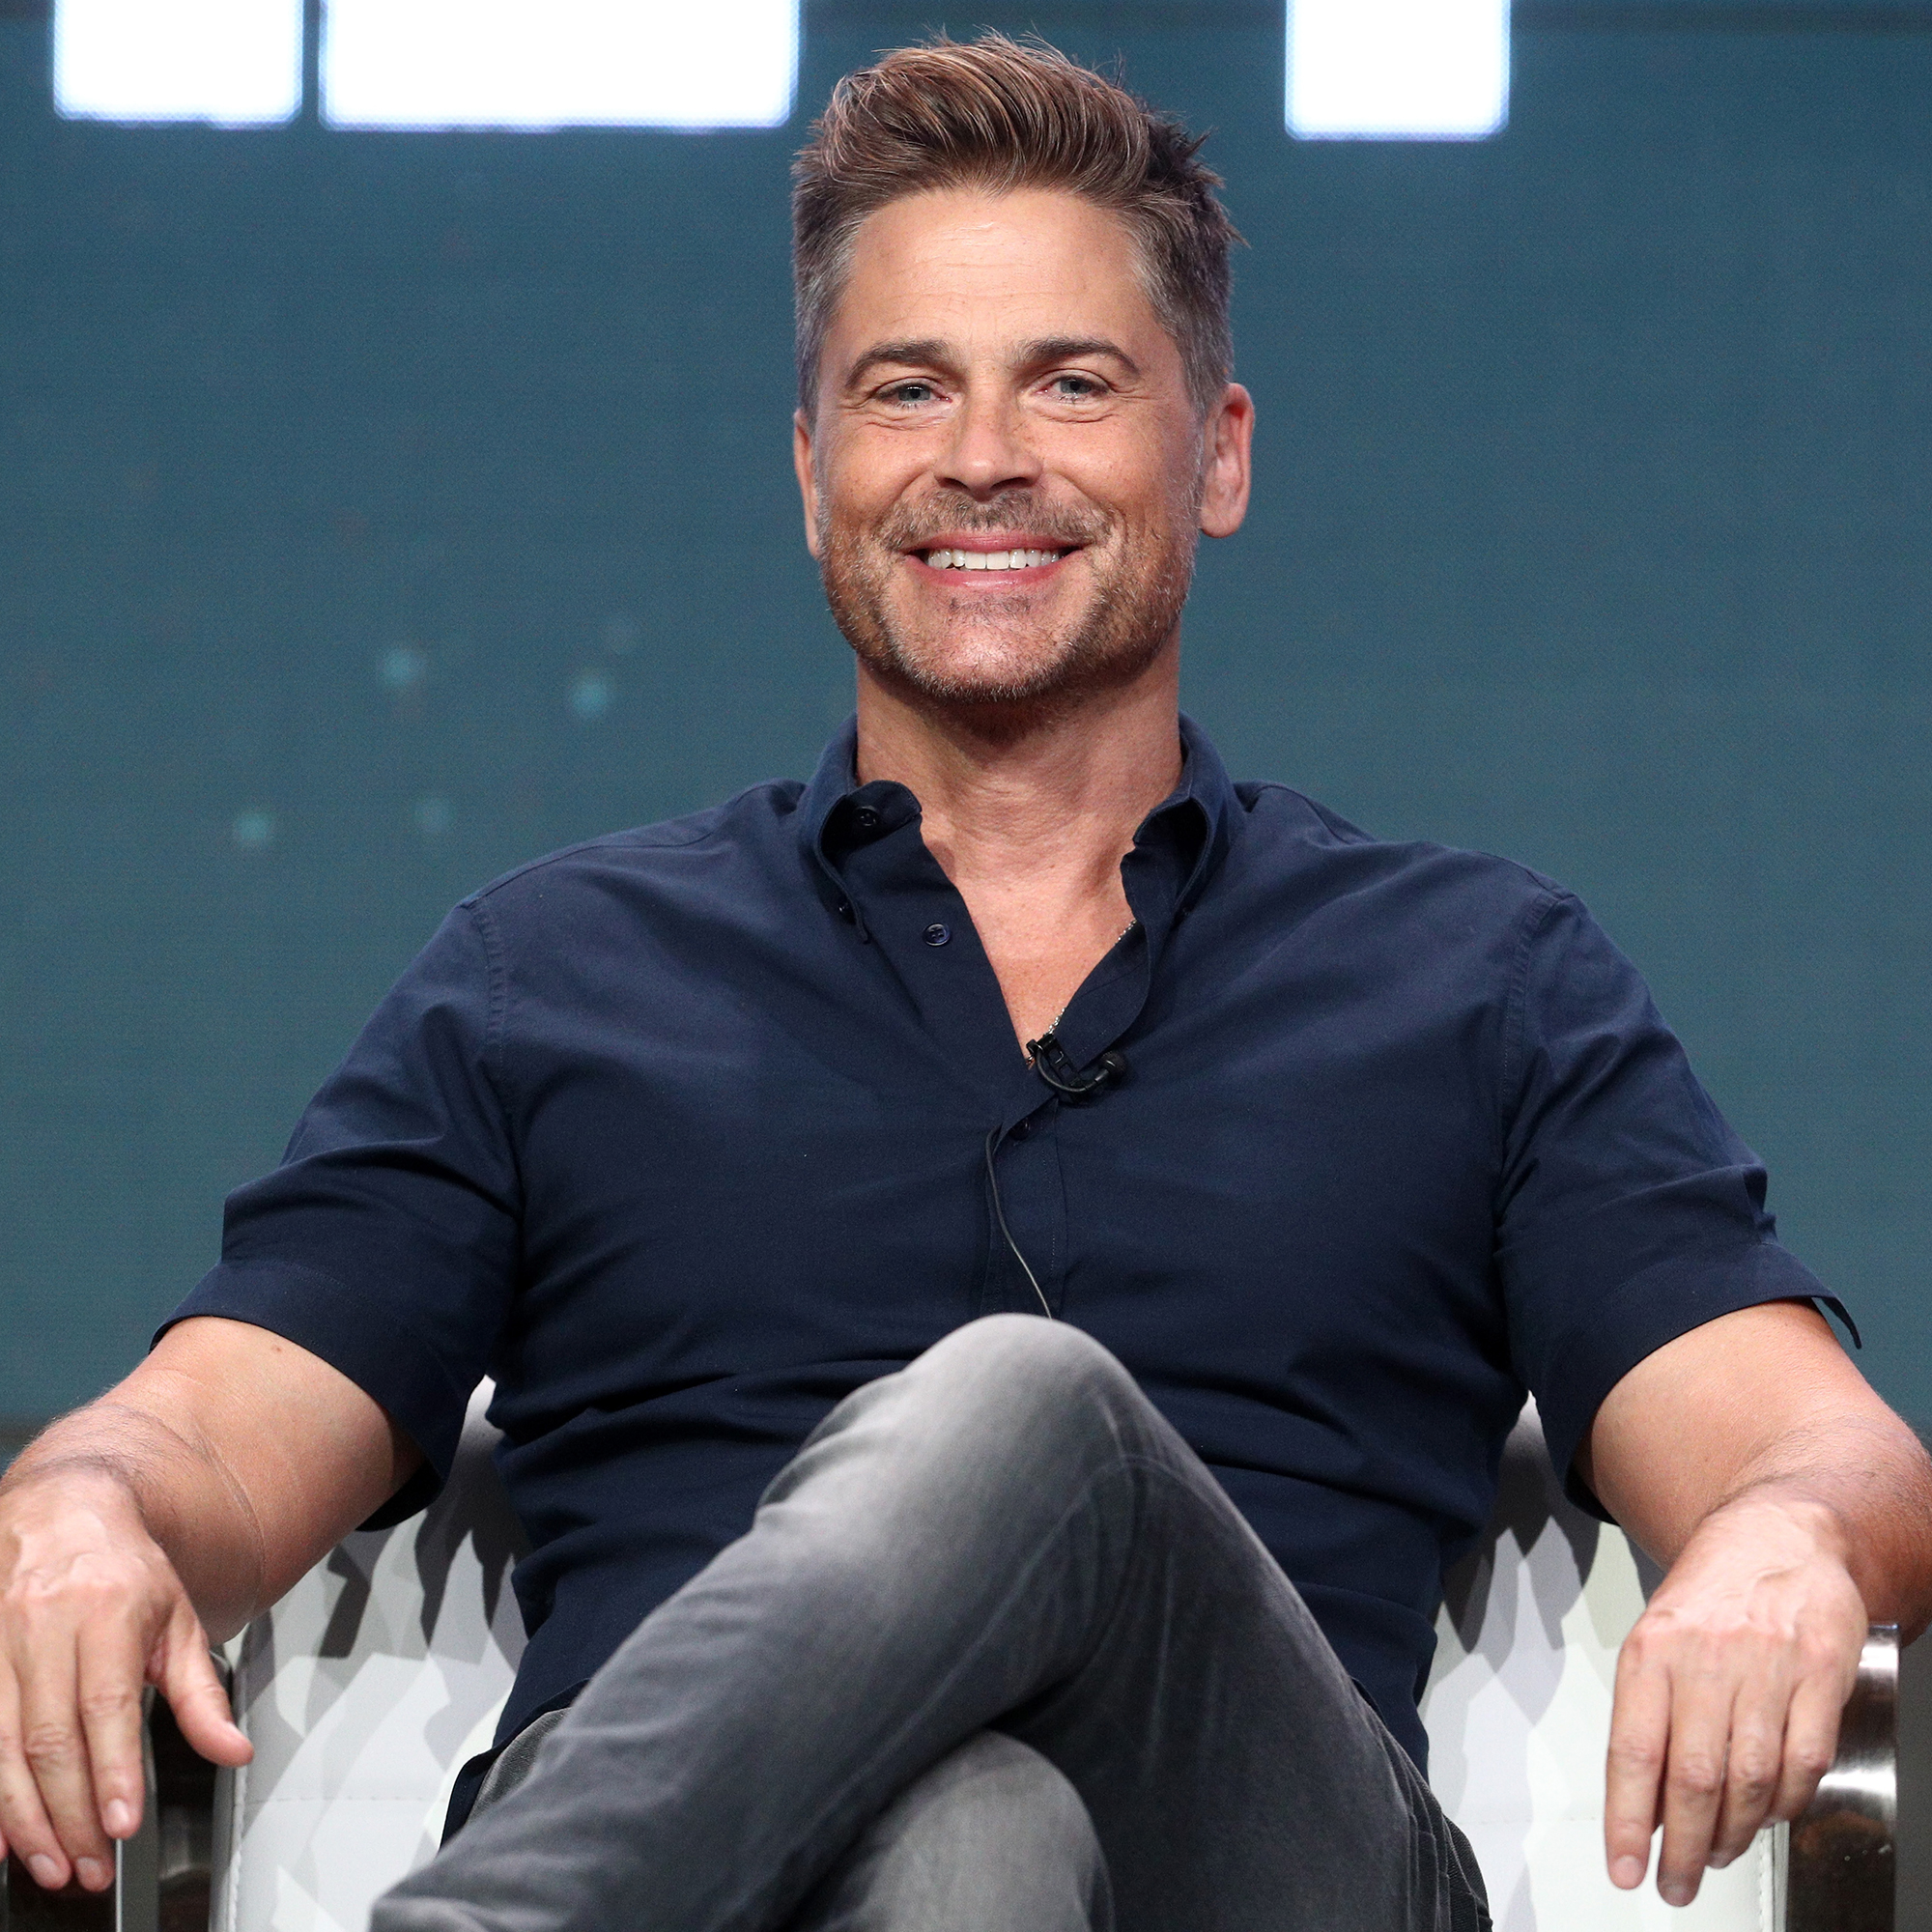 Rob Lowe Jokes Turning Down McDreamy Role: It 'Probably Cost Me $70 Million' - Rob Lowe.